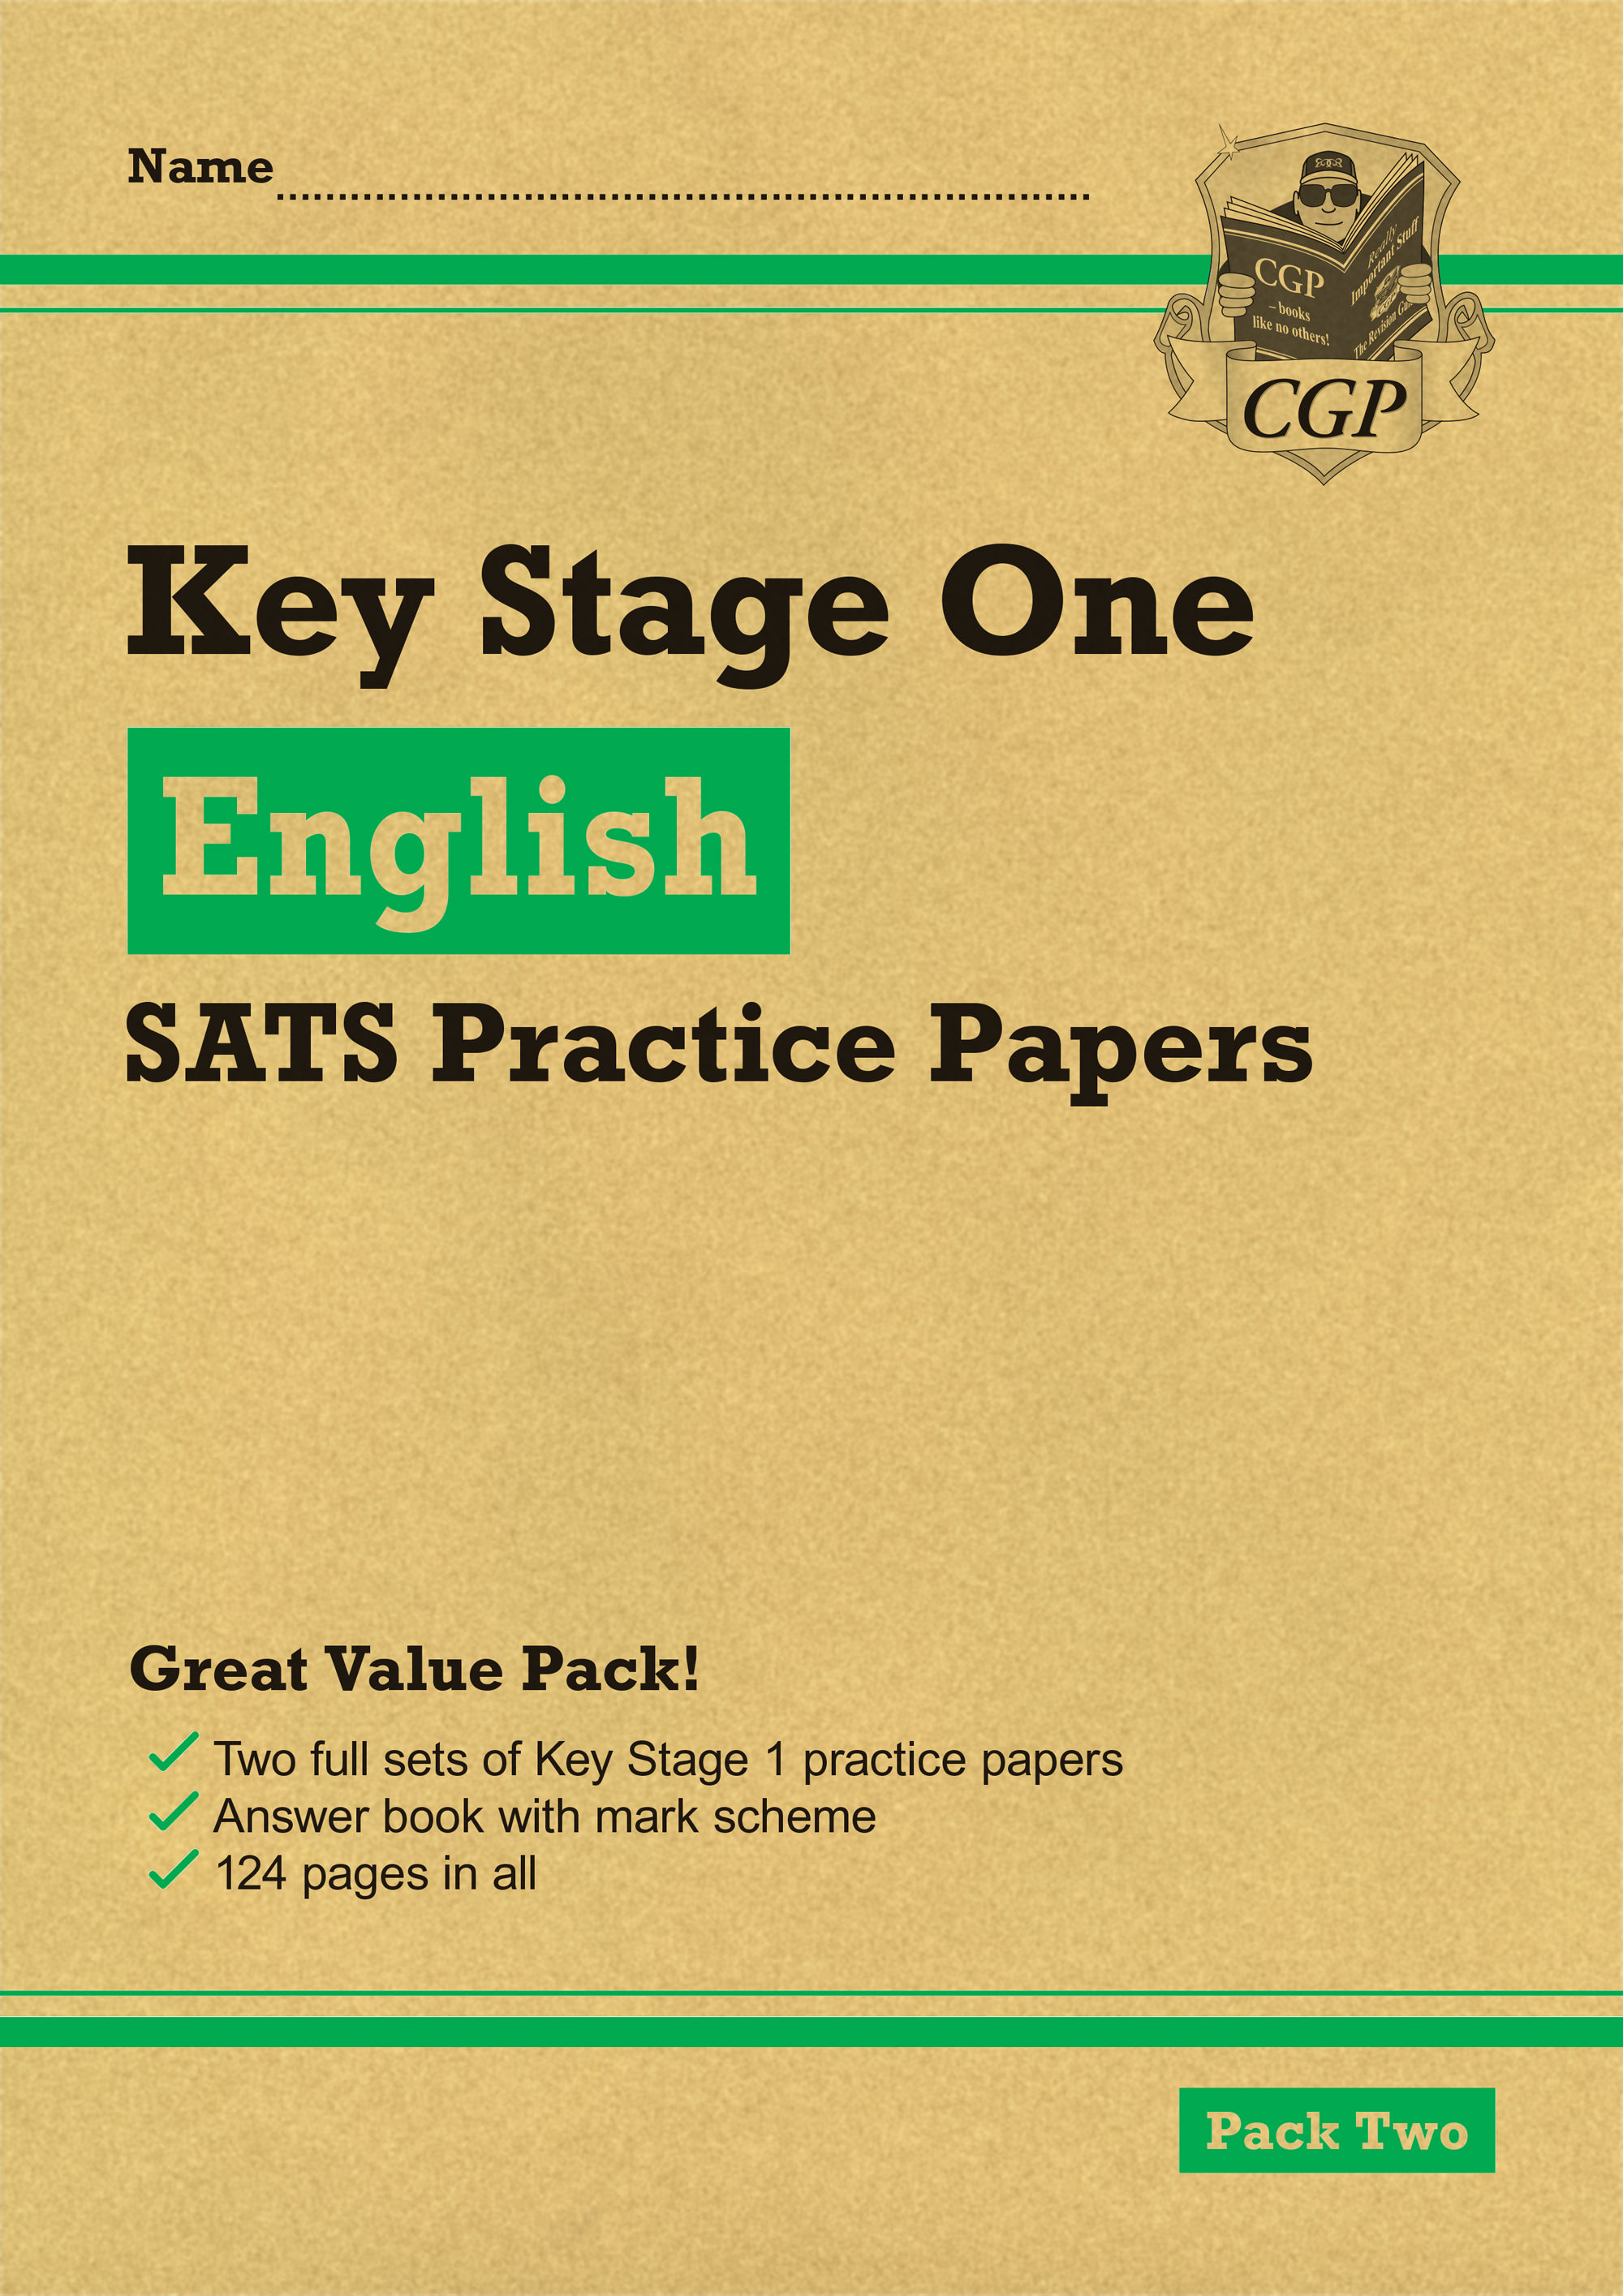 EHGP13 - New KS1 English SATS Practice Papers: Pack 2 (for the 2019 tests)